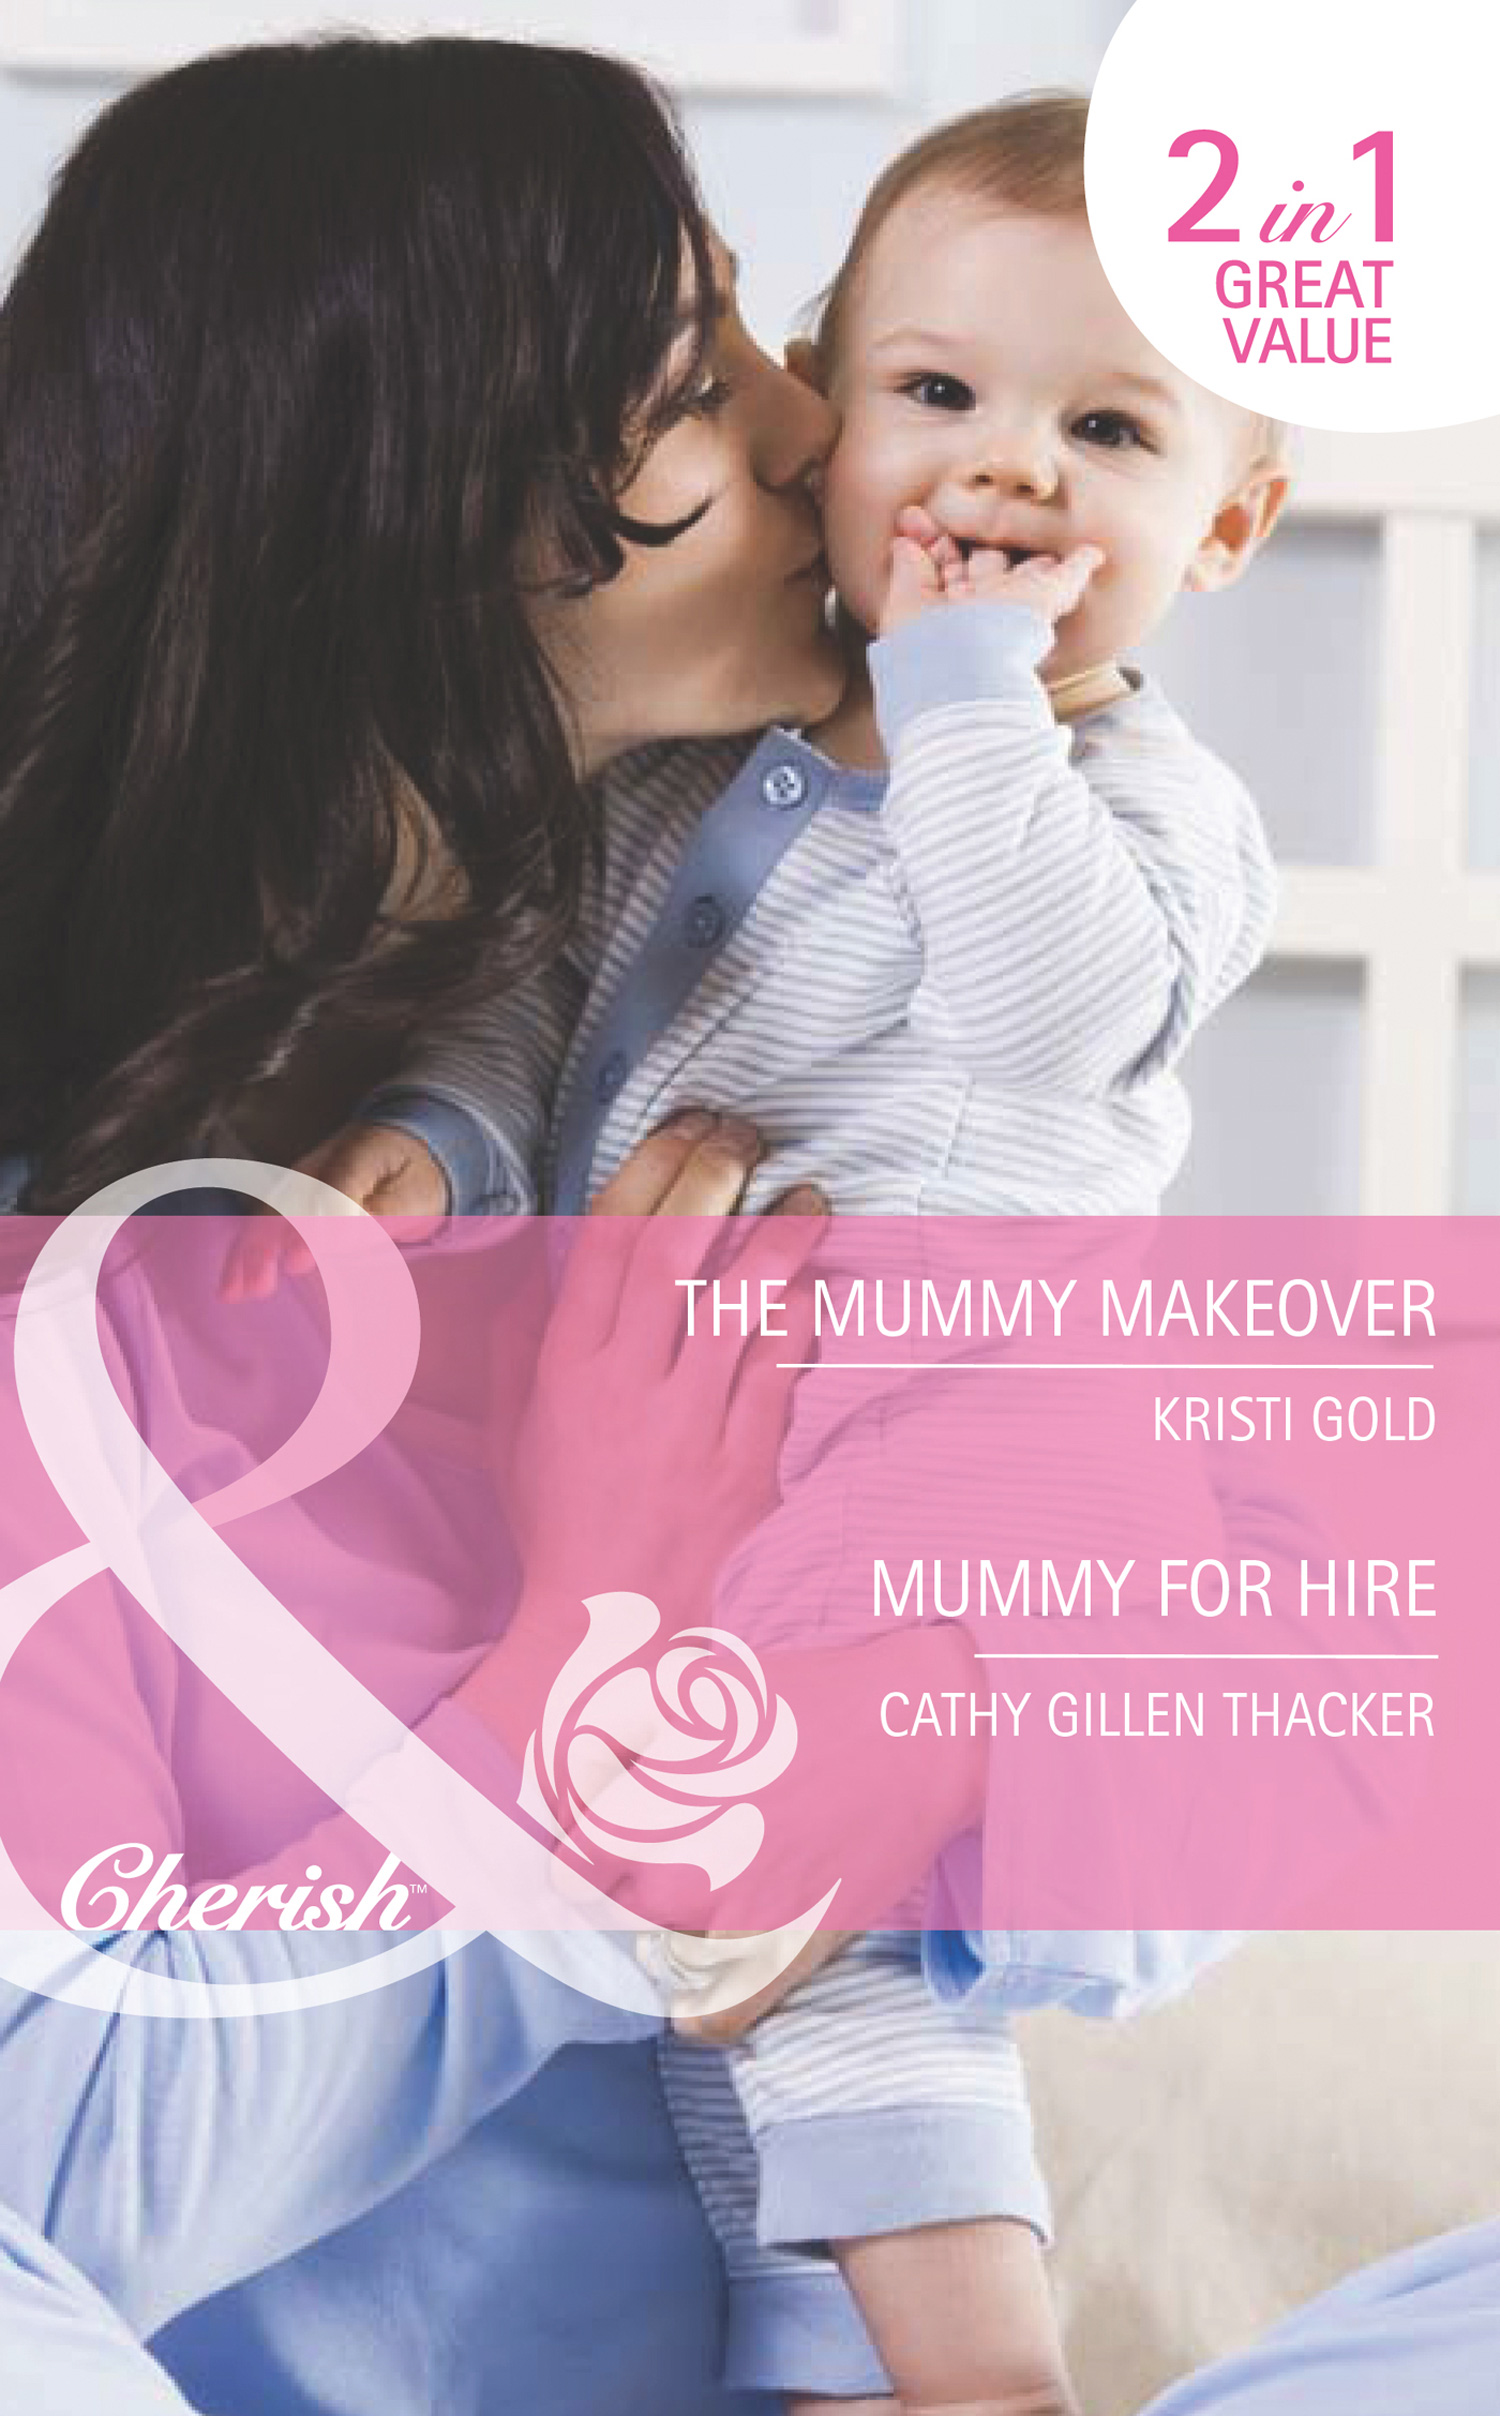 The Mummy Makeover / Mummy for Hire